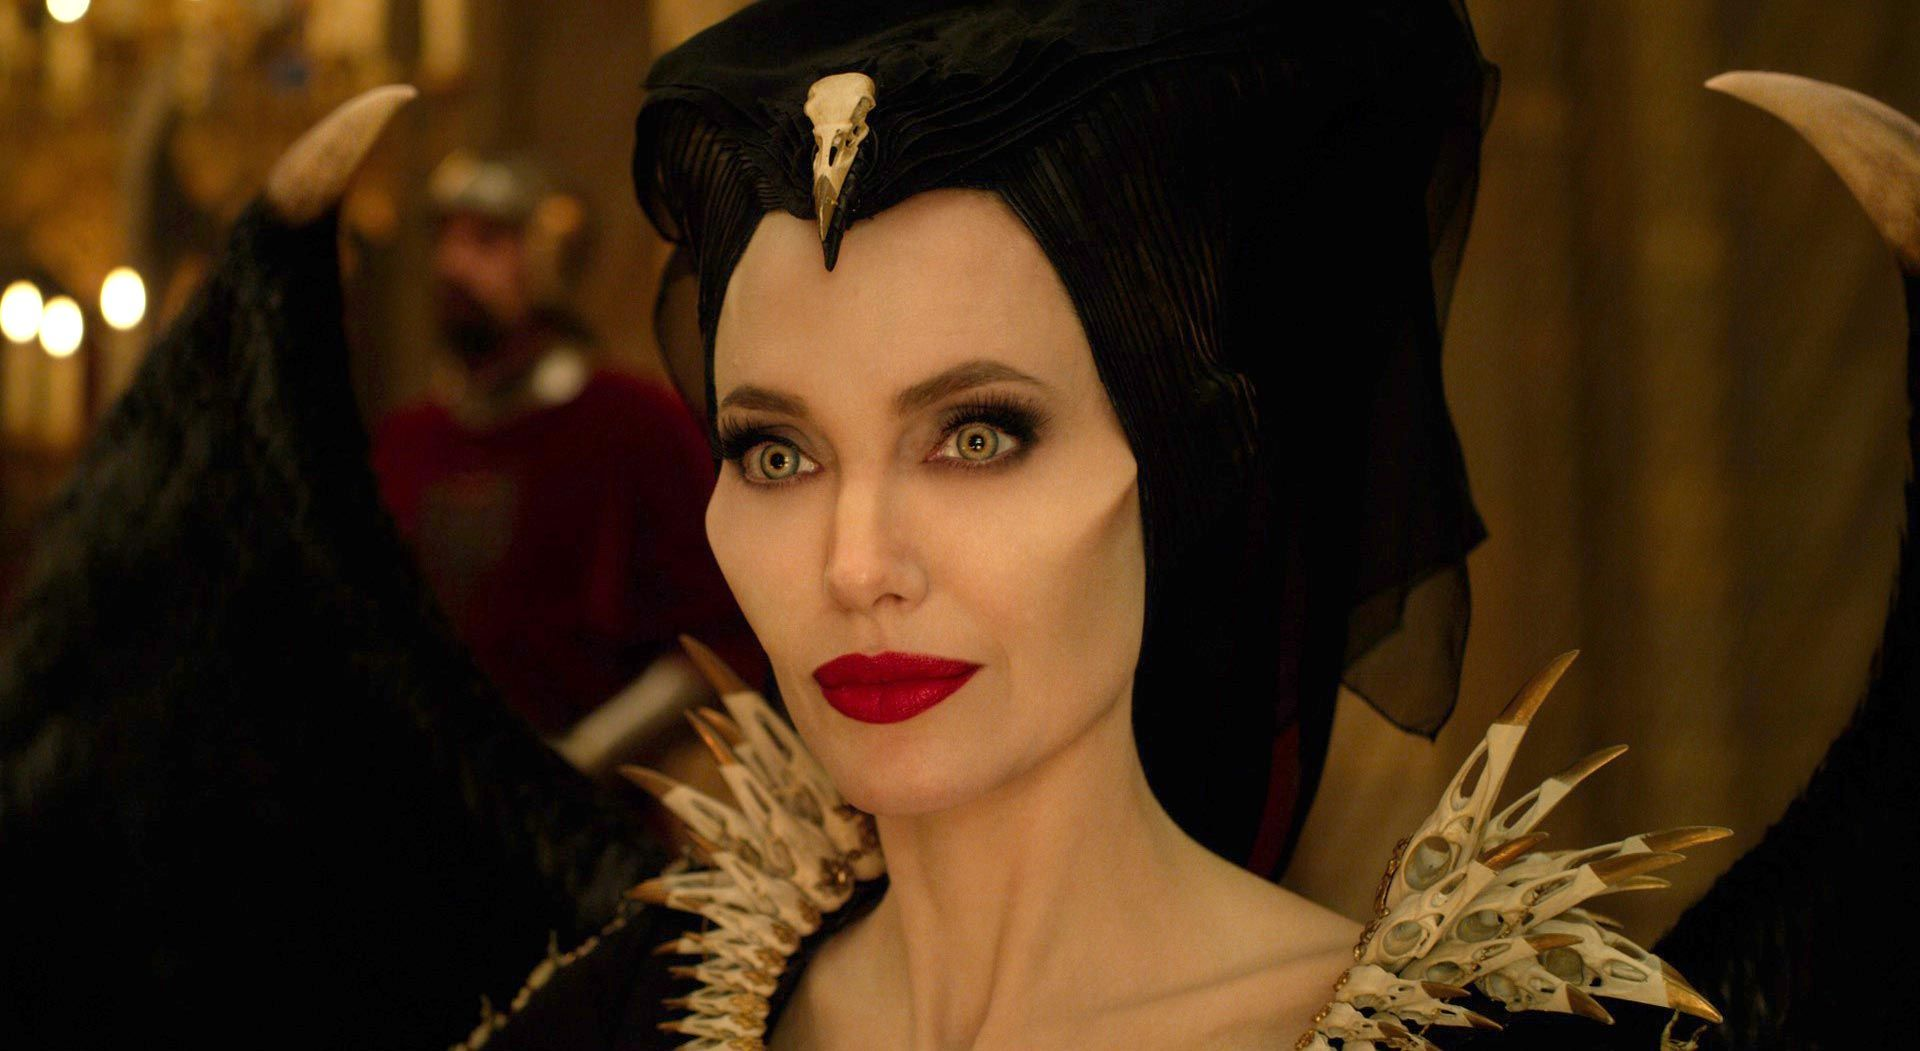 Why Maleficent: Mistress of Evil was moved forward from 2020